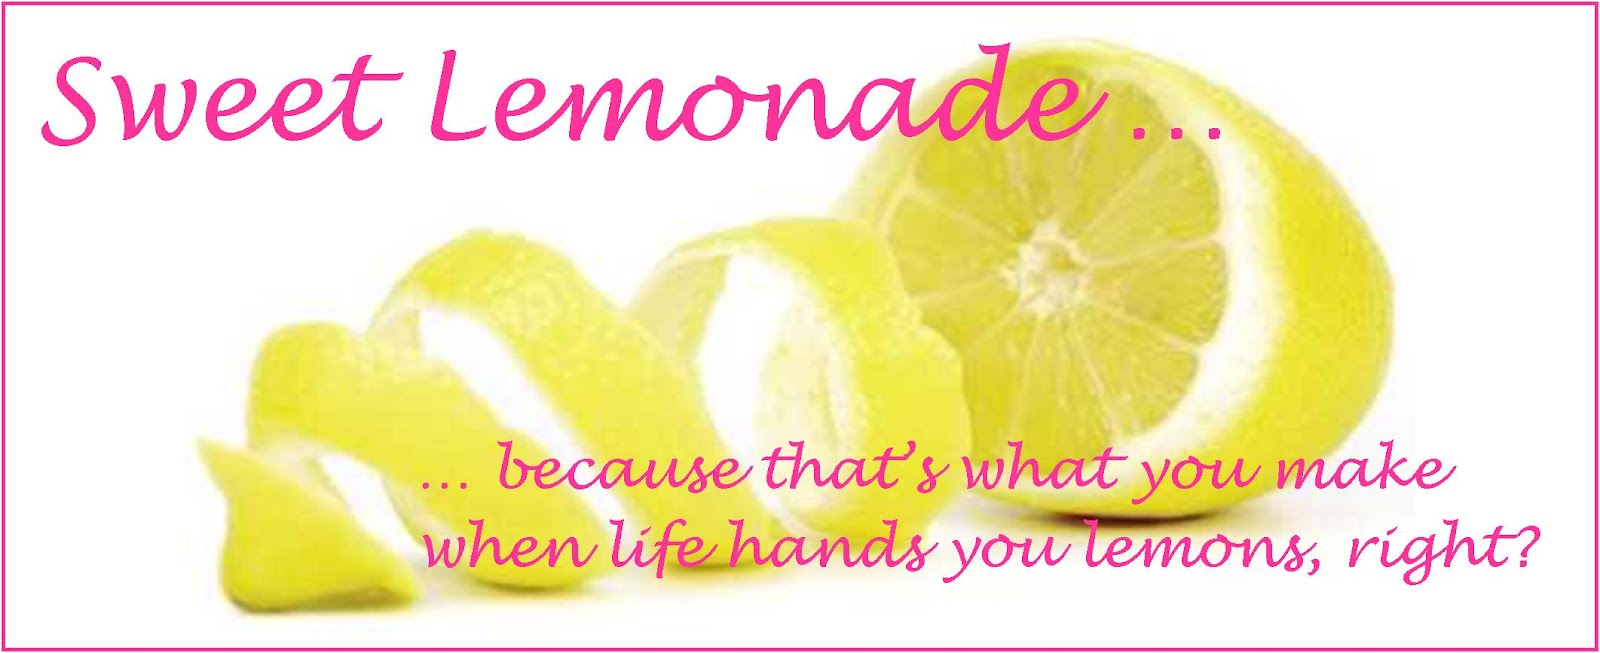 Sweet Lemonade